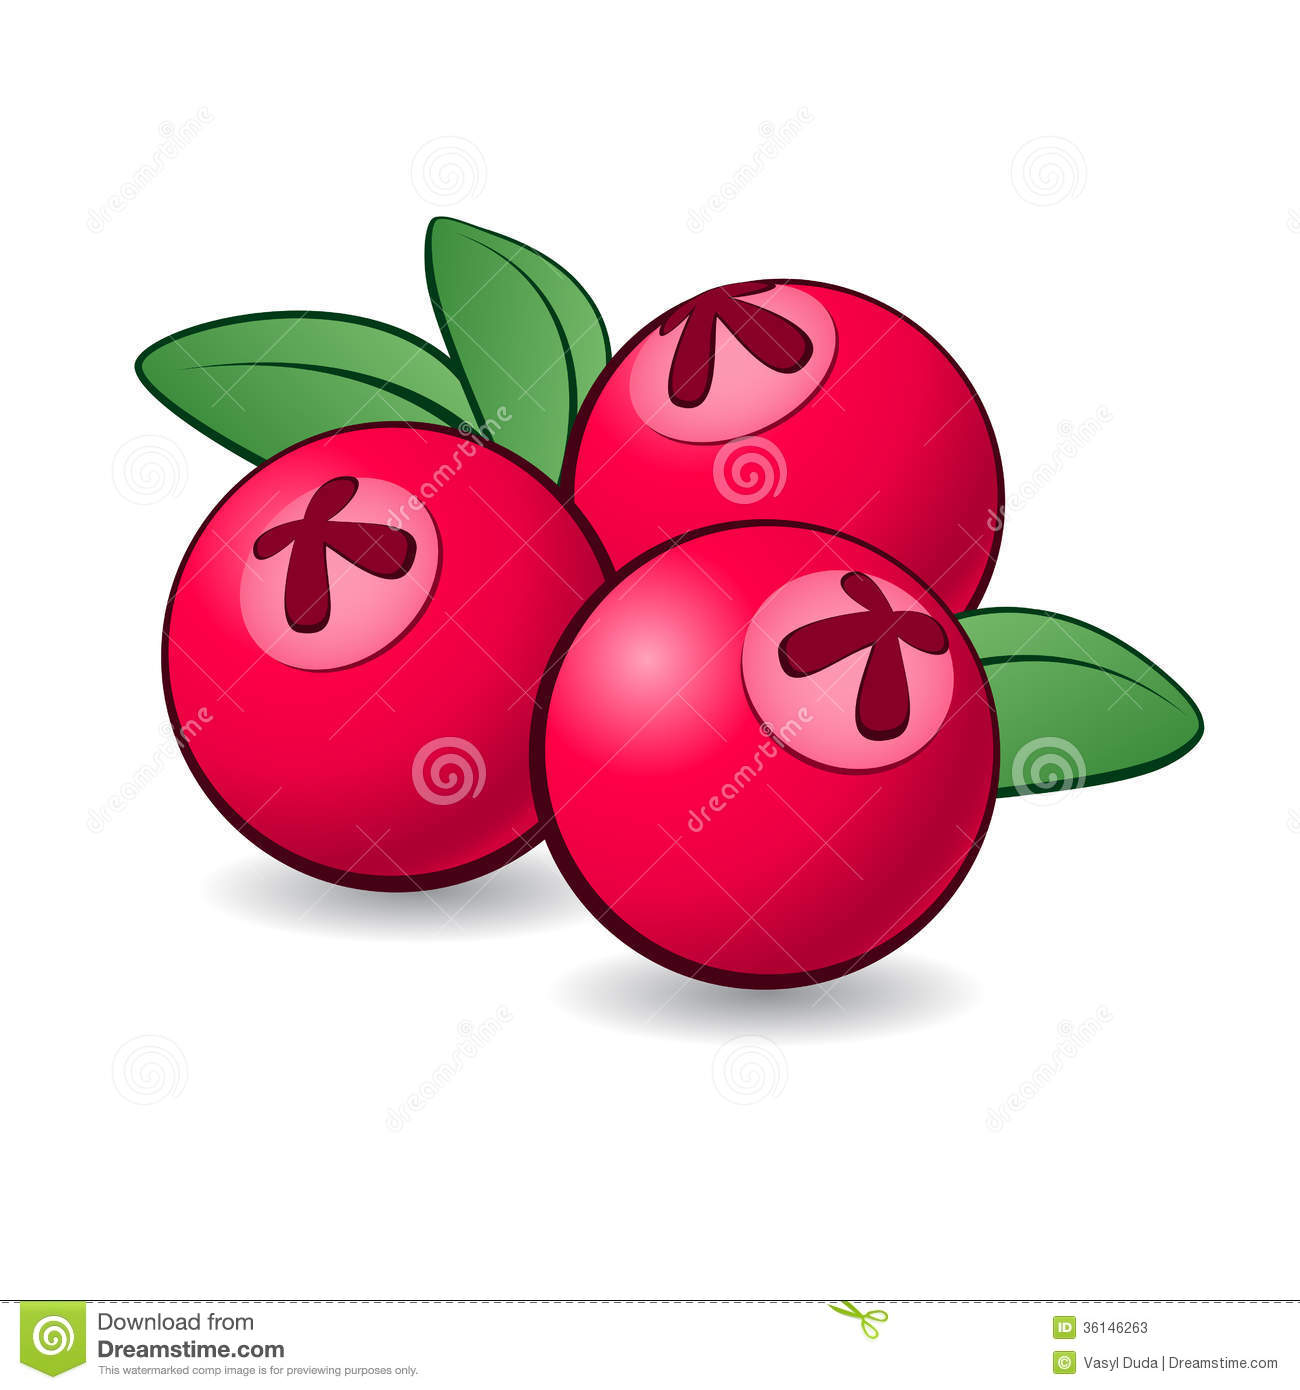 Berries clipart cranberry. Relish cartoon pencil and